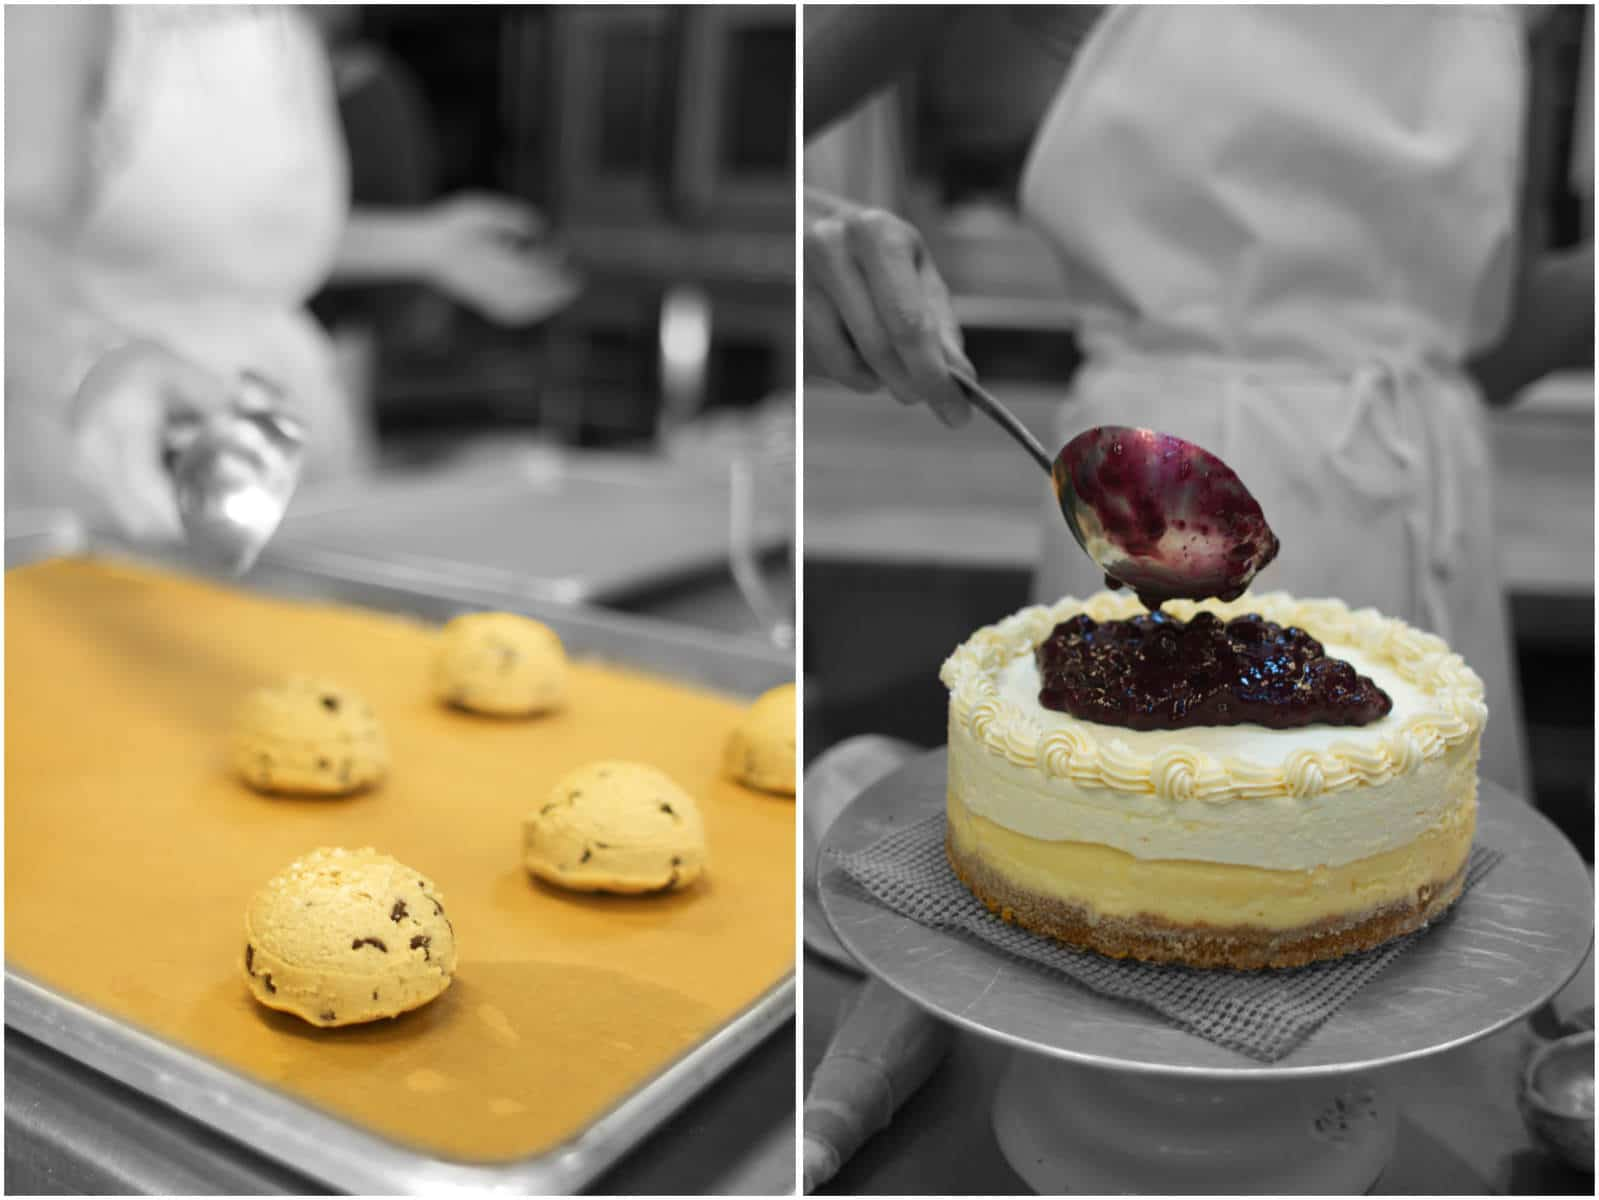 Cookies and Cheesecakes from Sweet Life Patisserie, Eugene, OR